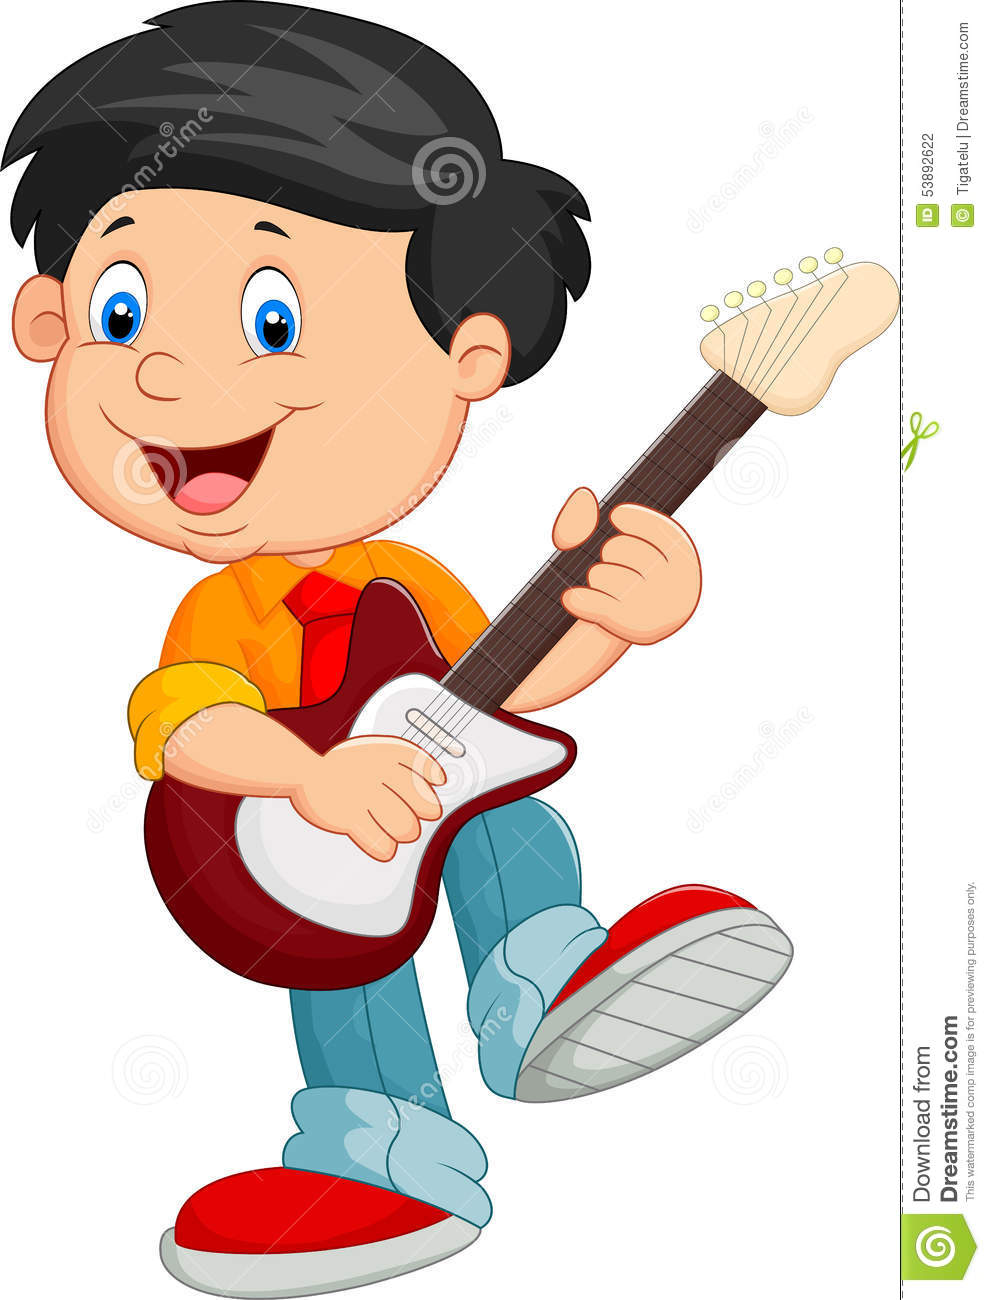 cartoon child play a guitar